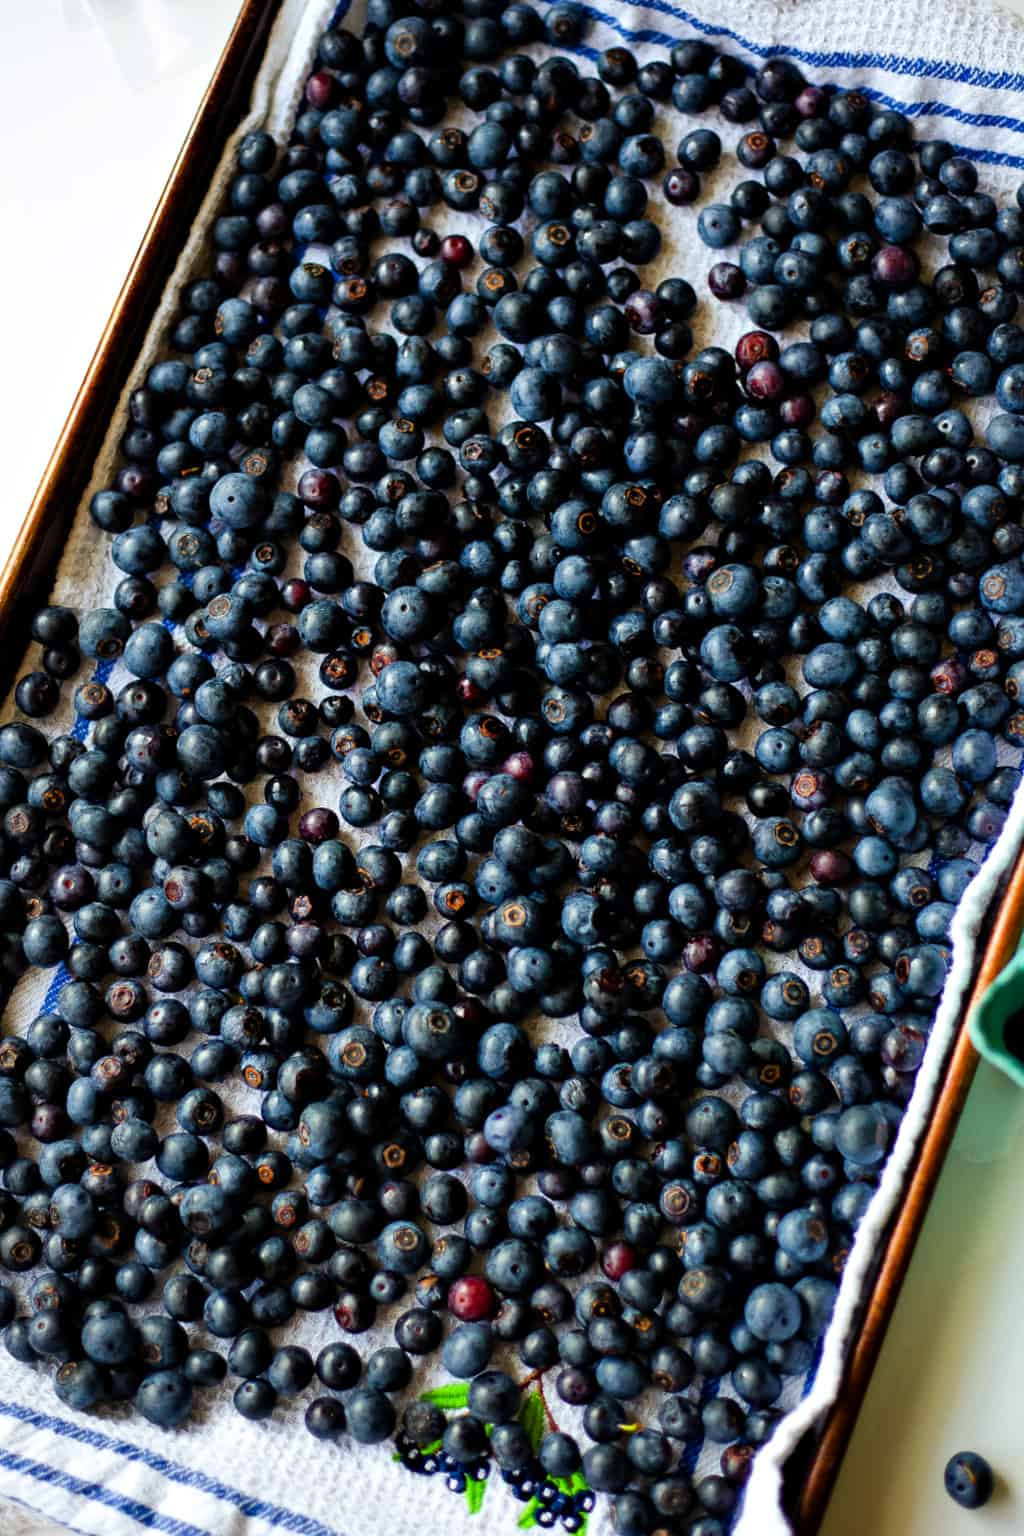 blueberries in a single layer on a kitchen towel